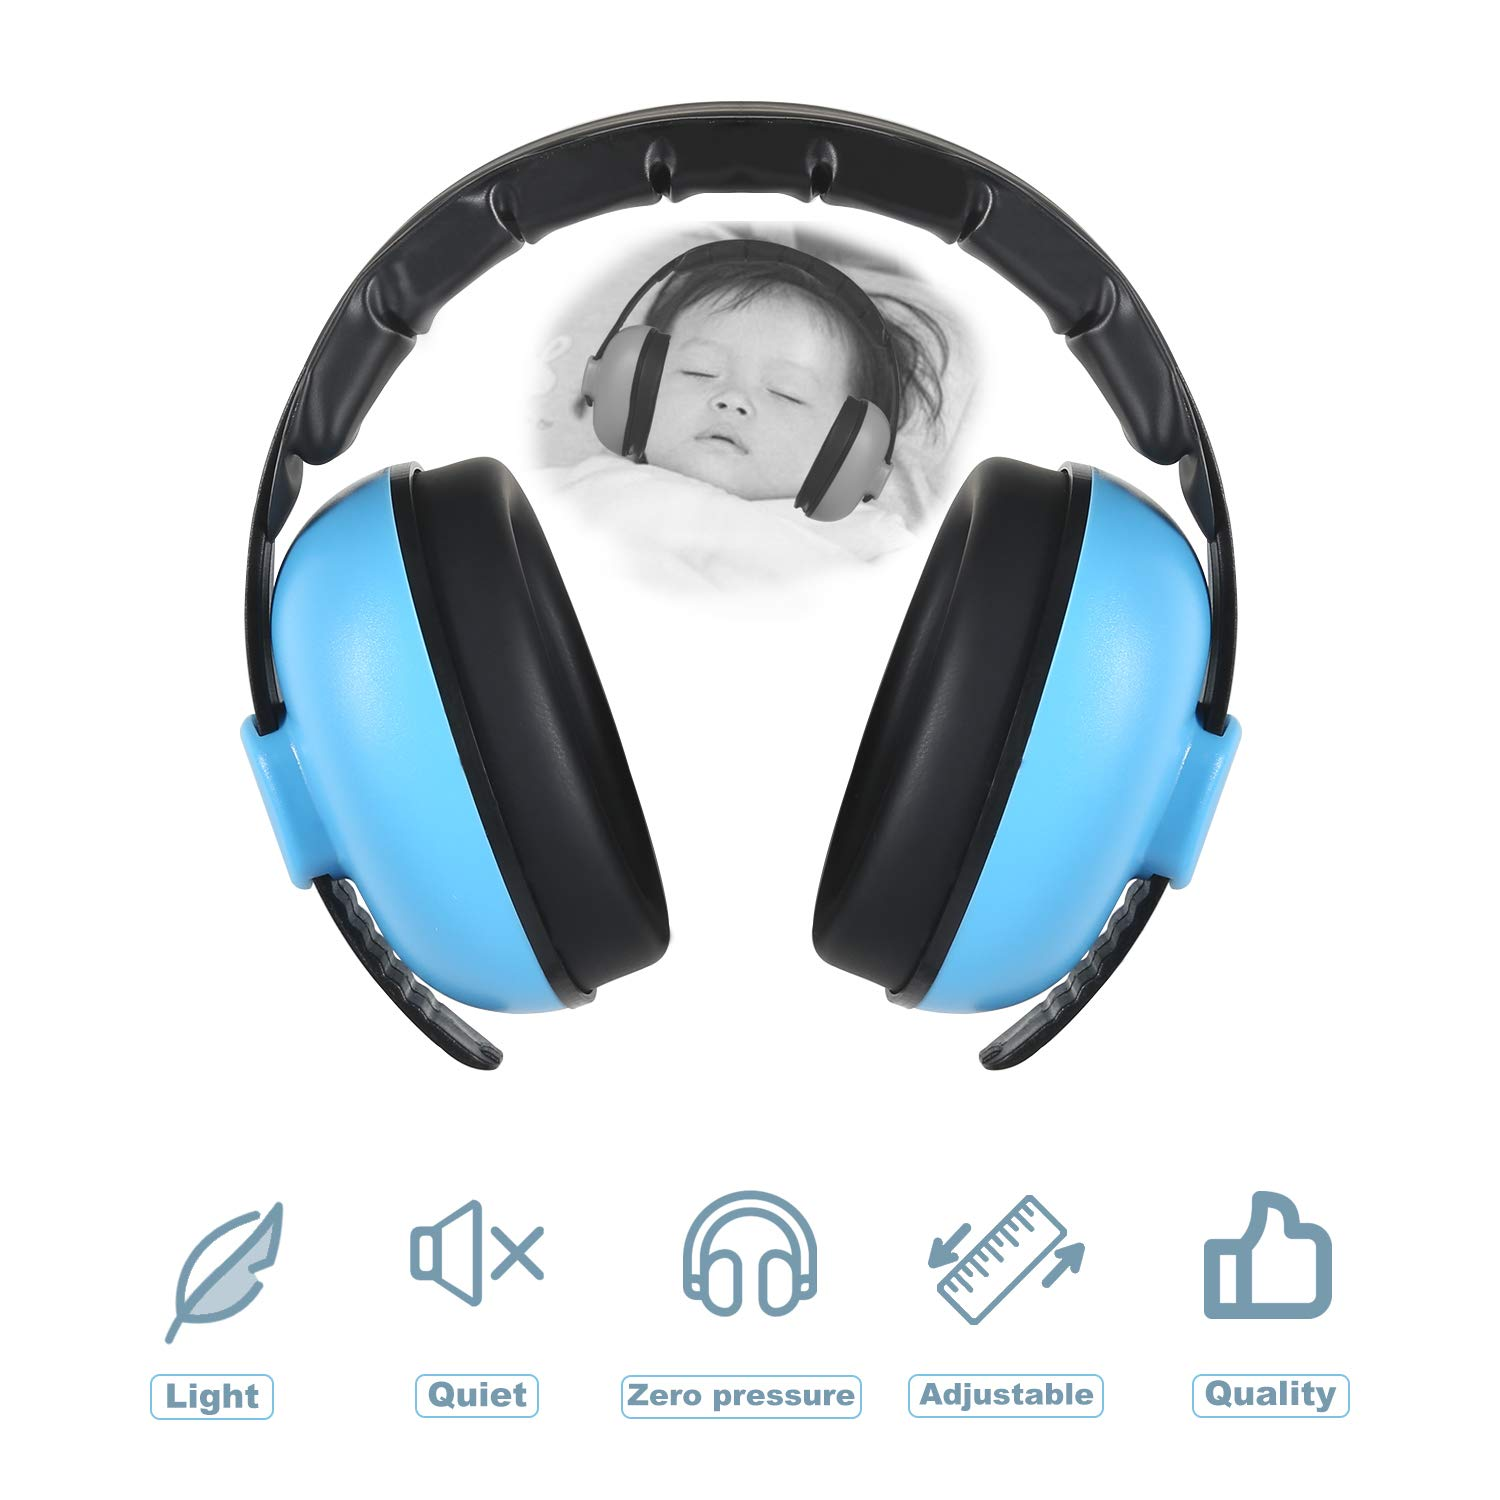 Baby Ear Protection Earmuff Muffs Sound Hearing Noise Airplane Travel for Infant Kids Toddler Newborn Child Babies by JOYNCLEON (Image #2)